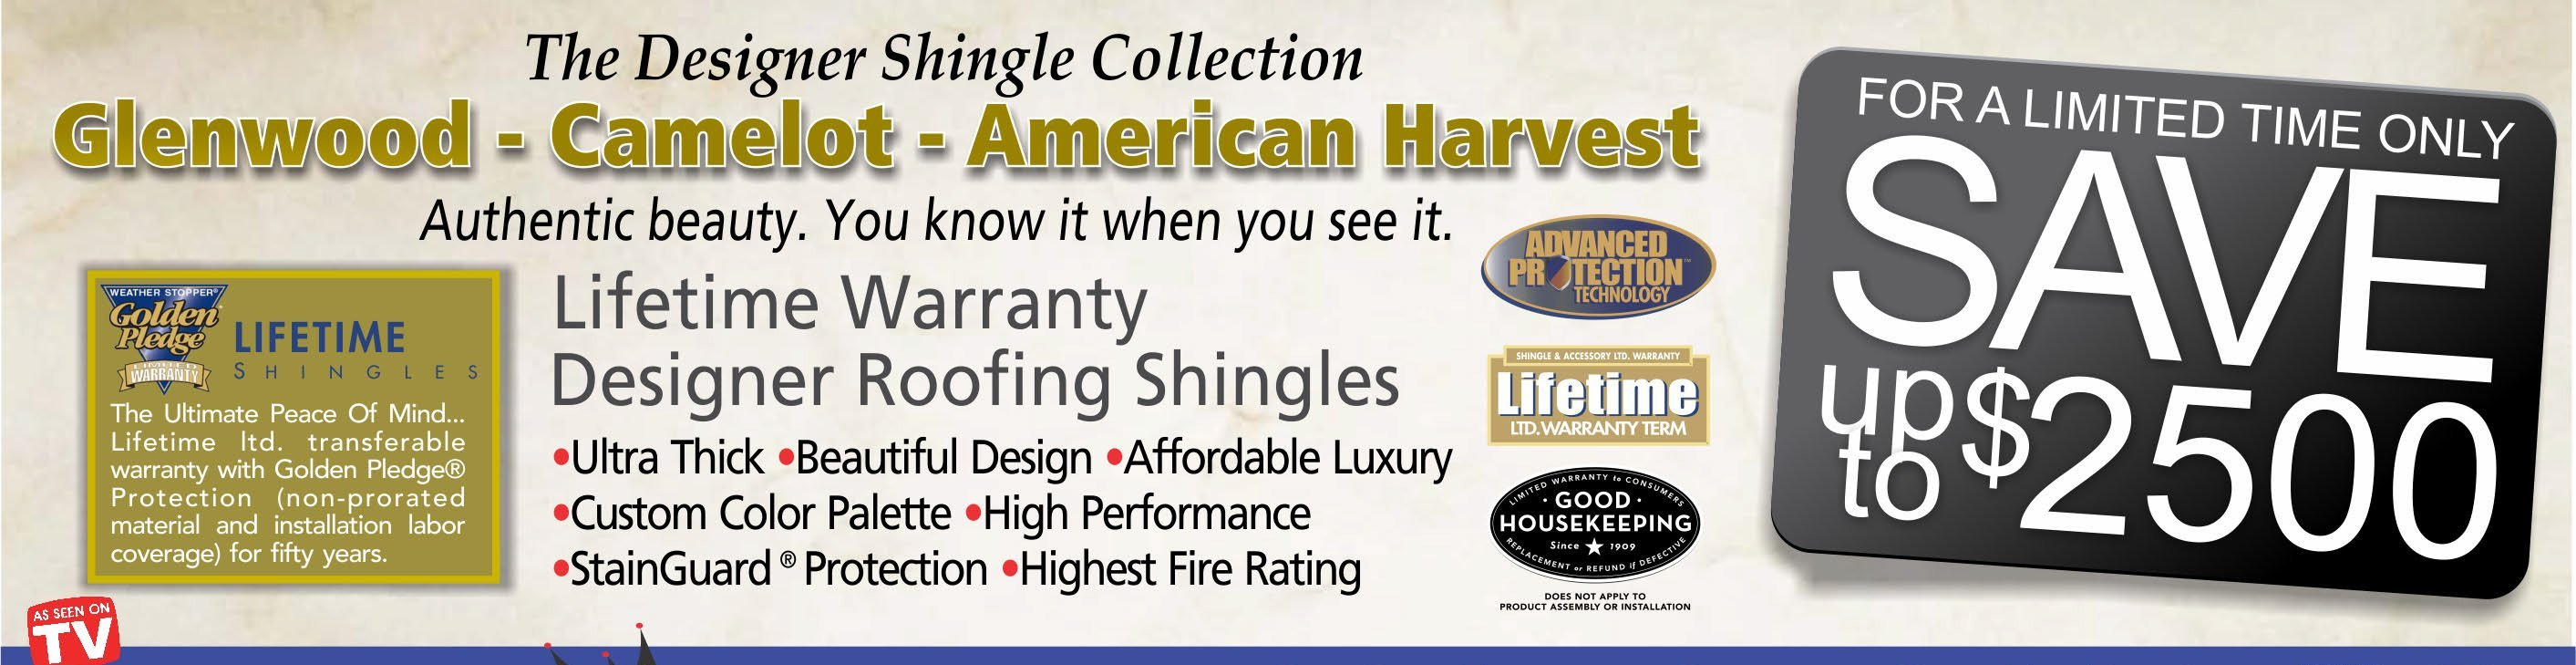 Save up to $2500 on designer roofing shingles at King Quality Construction - Click for details.